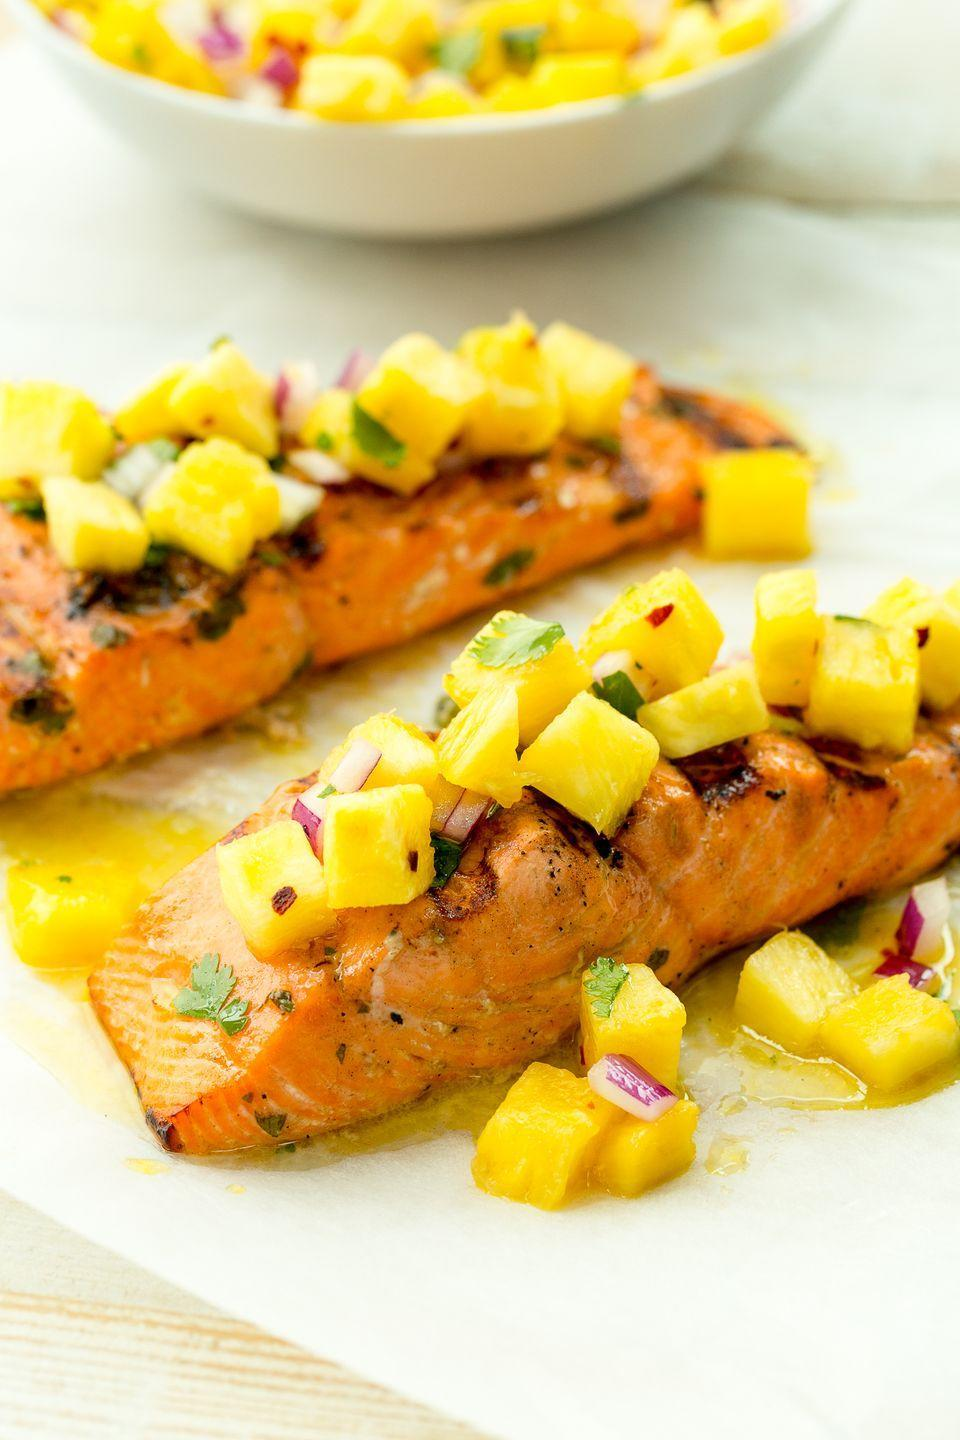 "<p>Fruity salsa is our new favorite condiment for grilled fish.</p><p>Get the recipe from <a href=""https://www.delish.com/cooking/recipe-ideas/recipes/a47376/grilled-salmon-with-pineapple-salsa-recipe/"" rel=""nofollow noopener"" target=""_blank"" data-ylk=""slk:Delish"" class=""link rapid-noclick-resp"">Delish</a>.</p>"